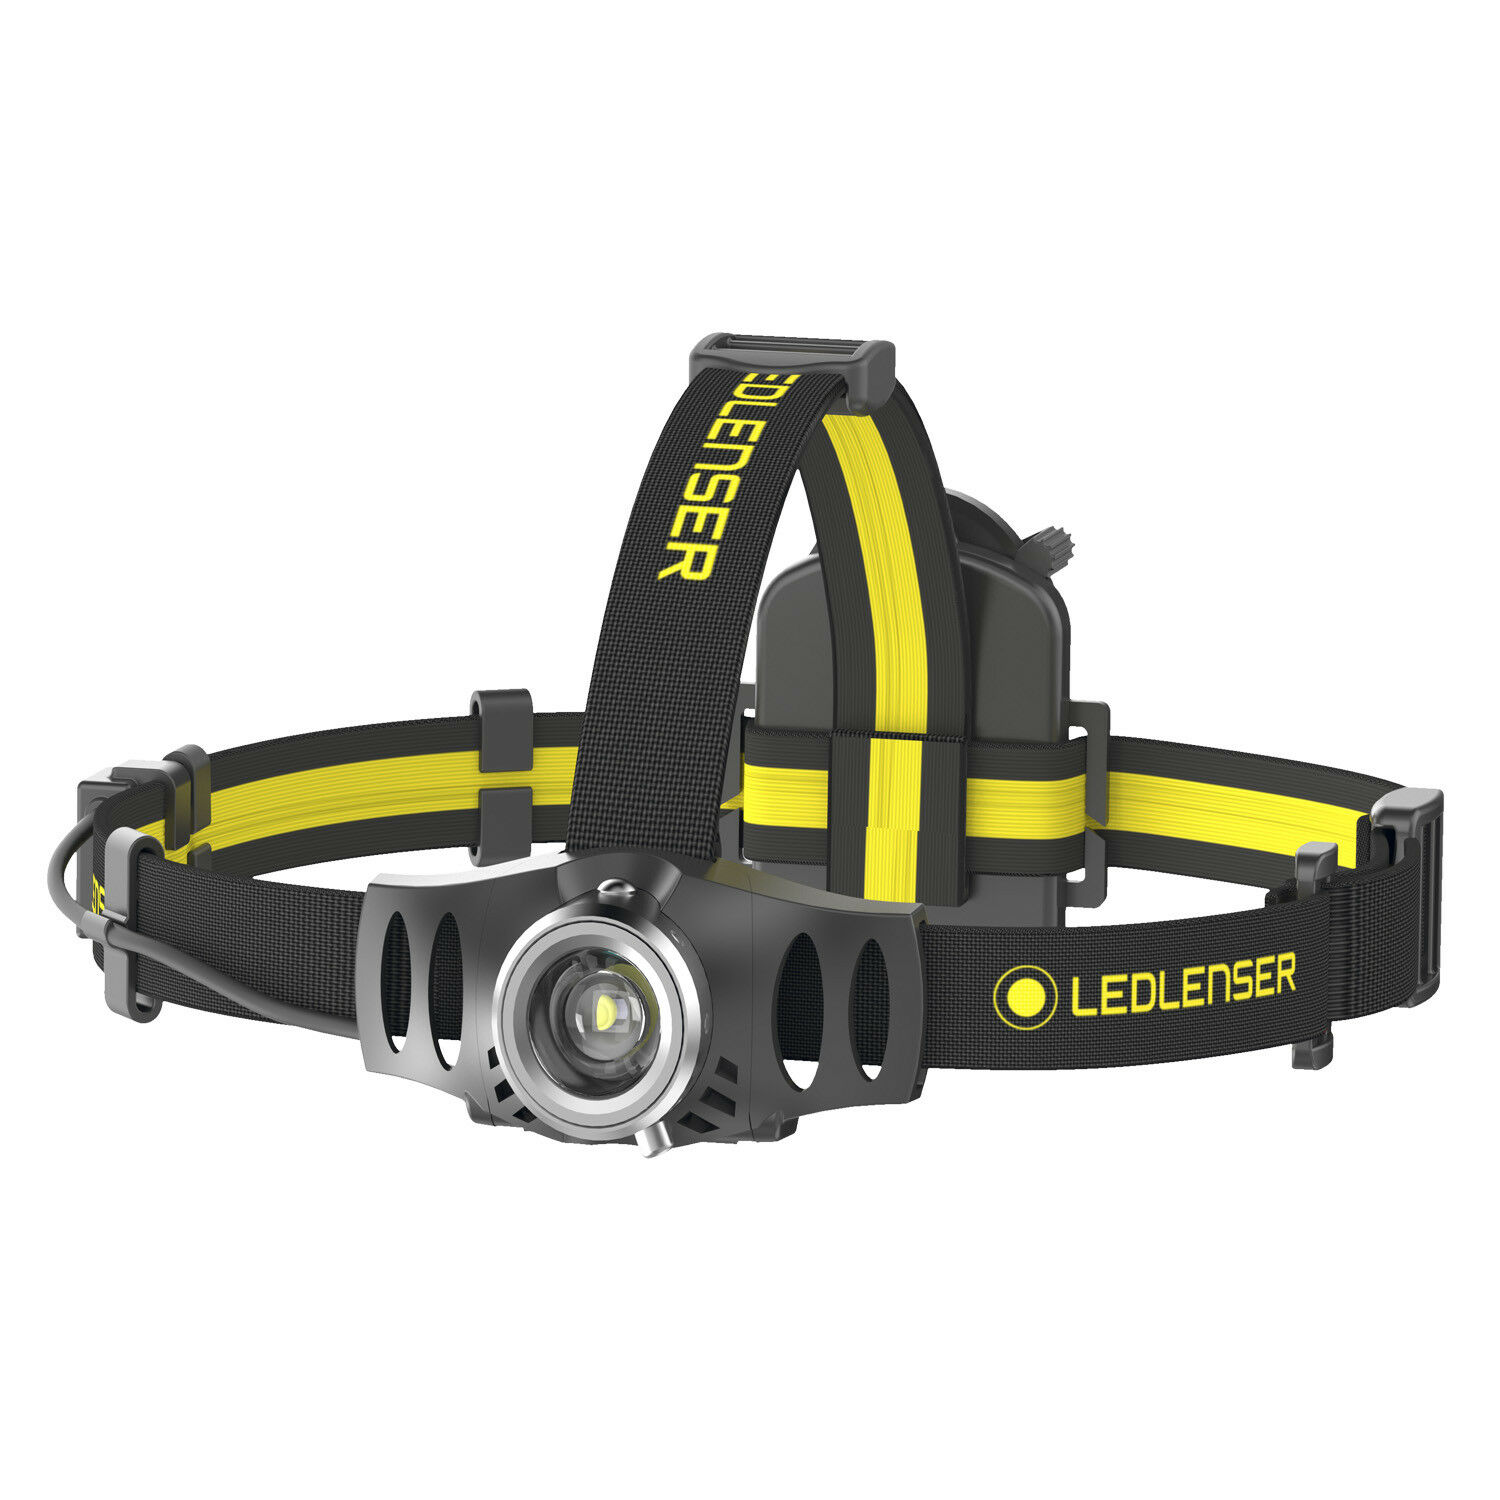 LED Lenser  iH6R Rechargeable Head Light Torch 200 Lumens  new sadie